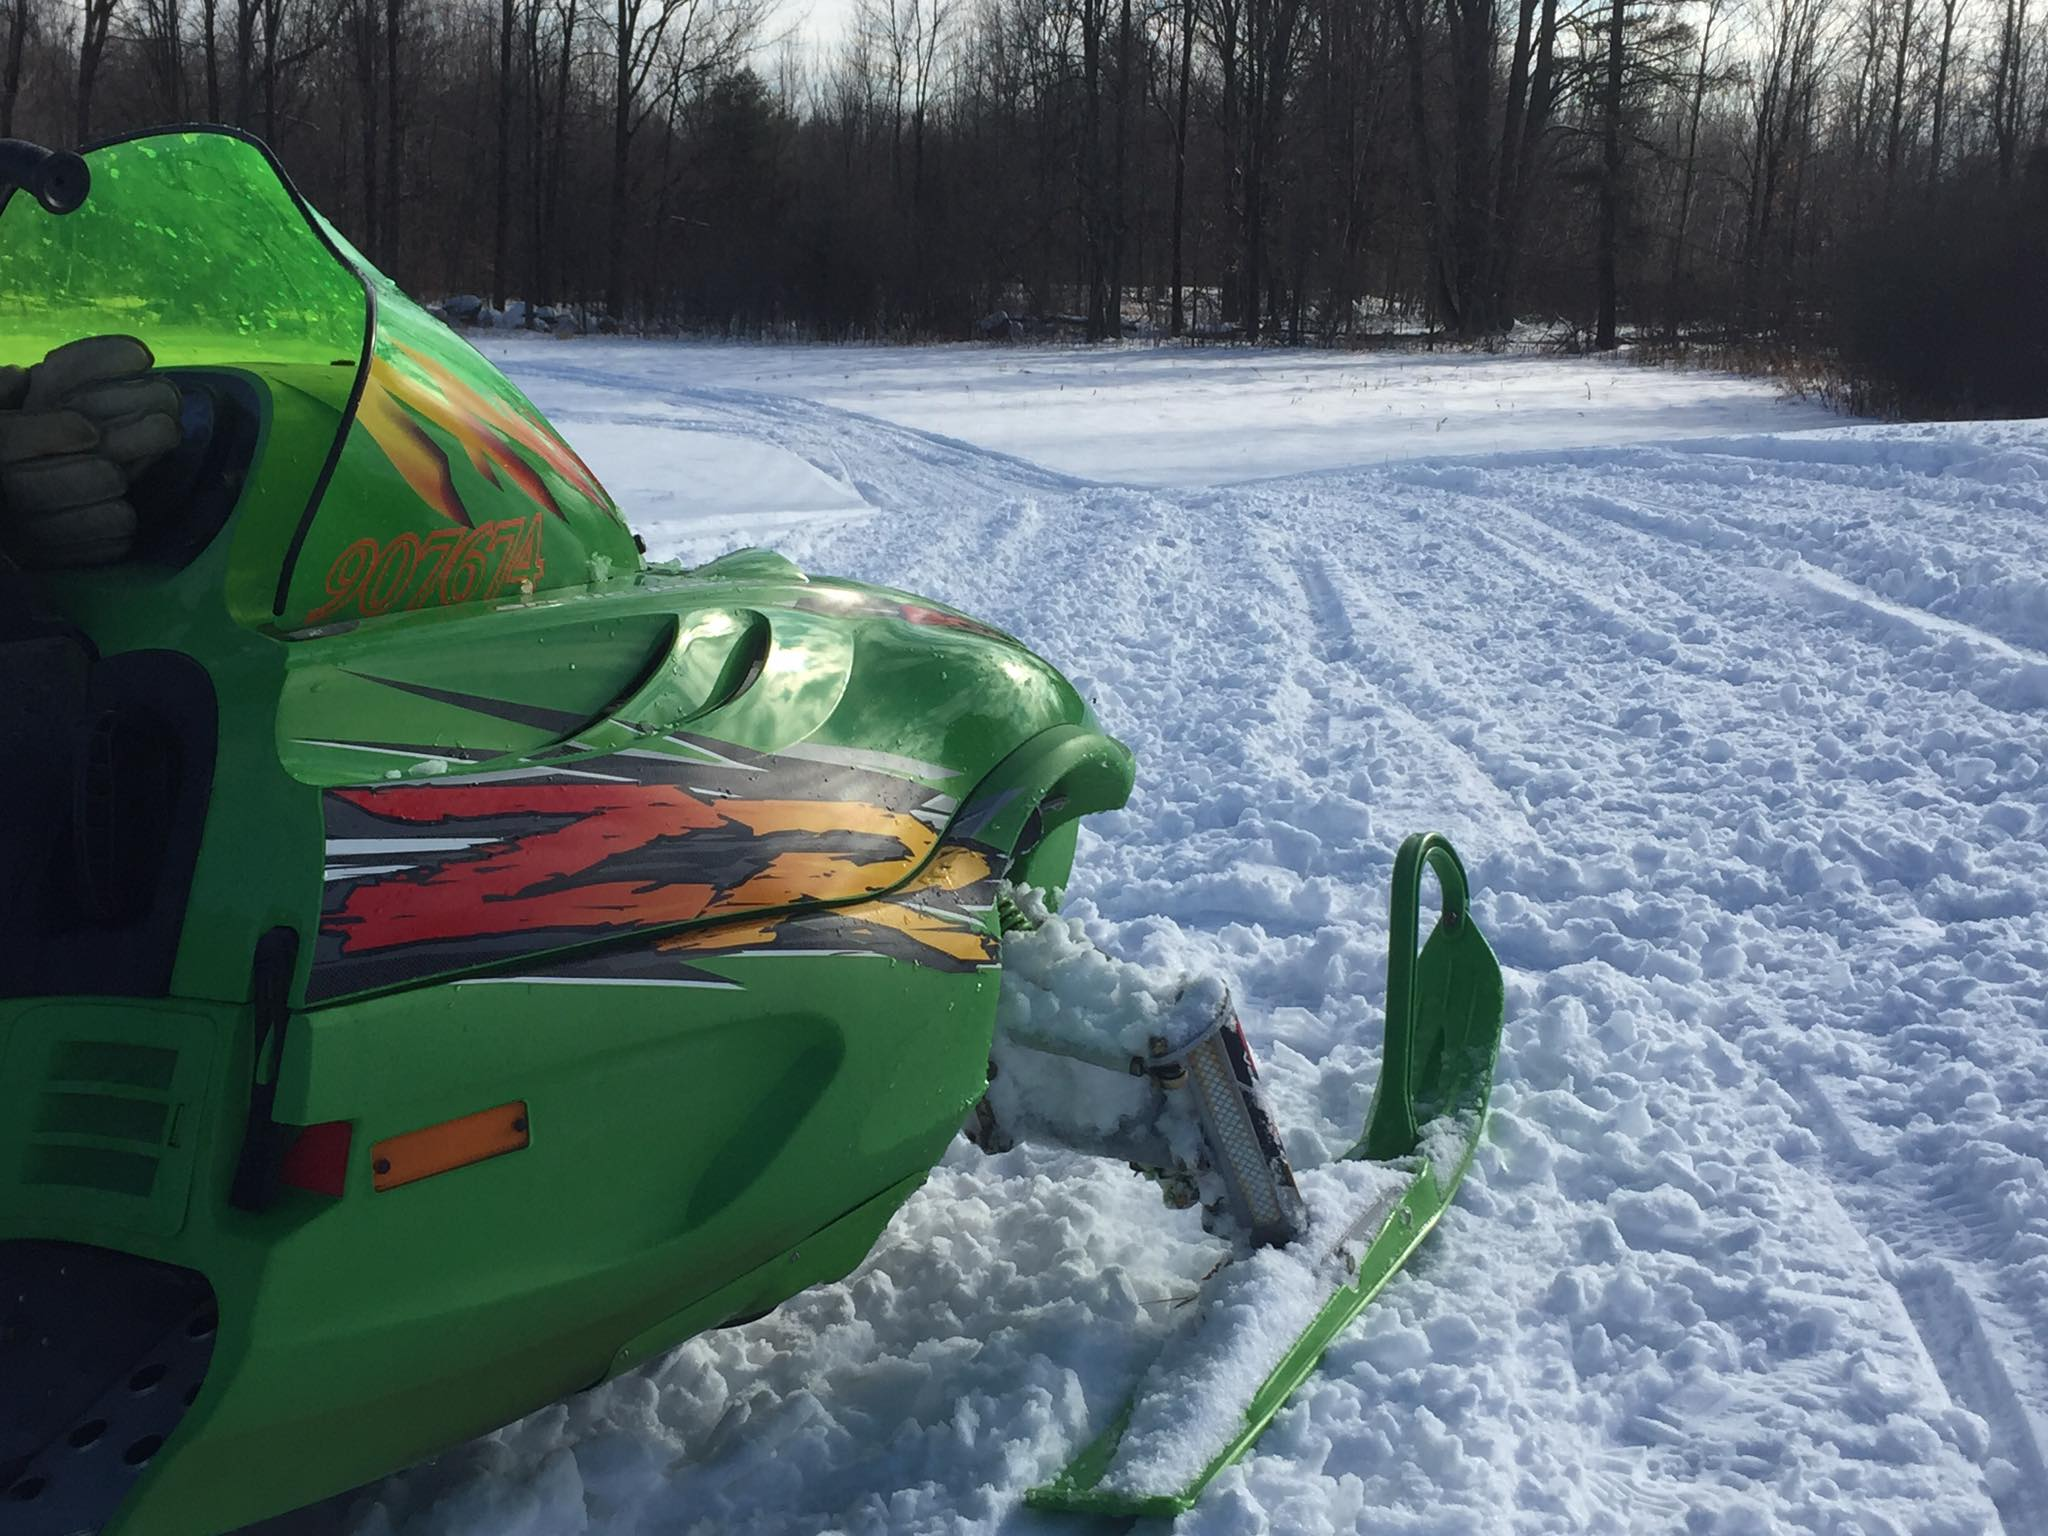 An Arctic Cat ZR800 snowmobile on the trail in Innisville Ontario